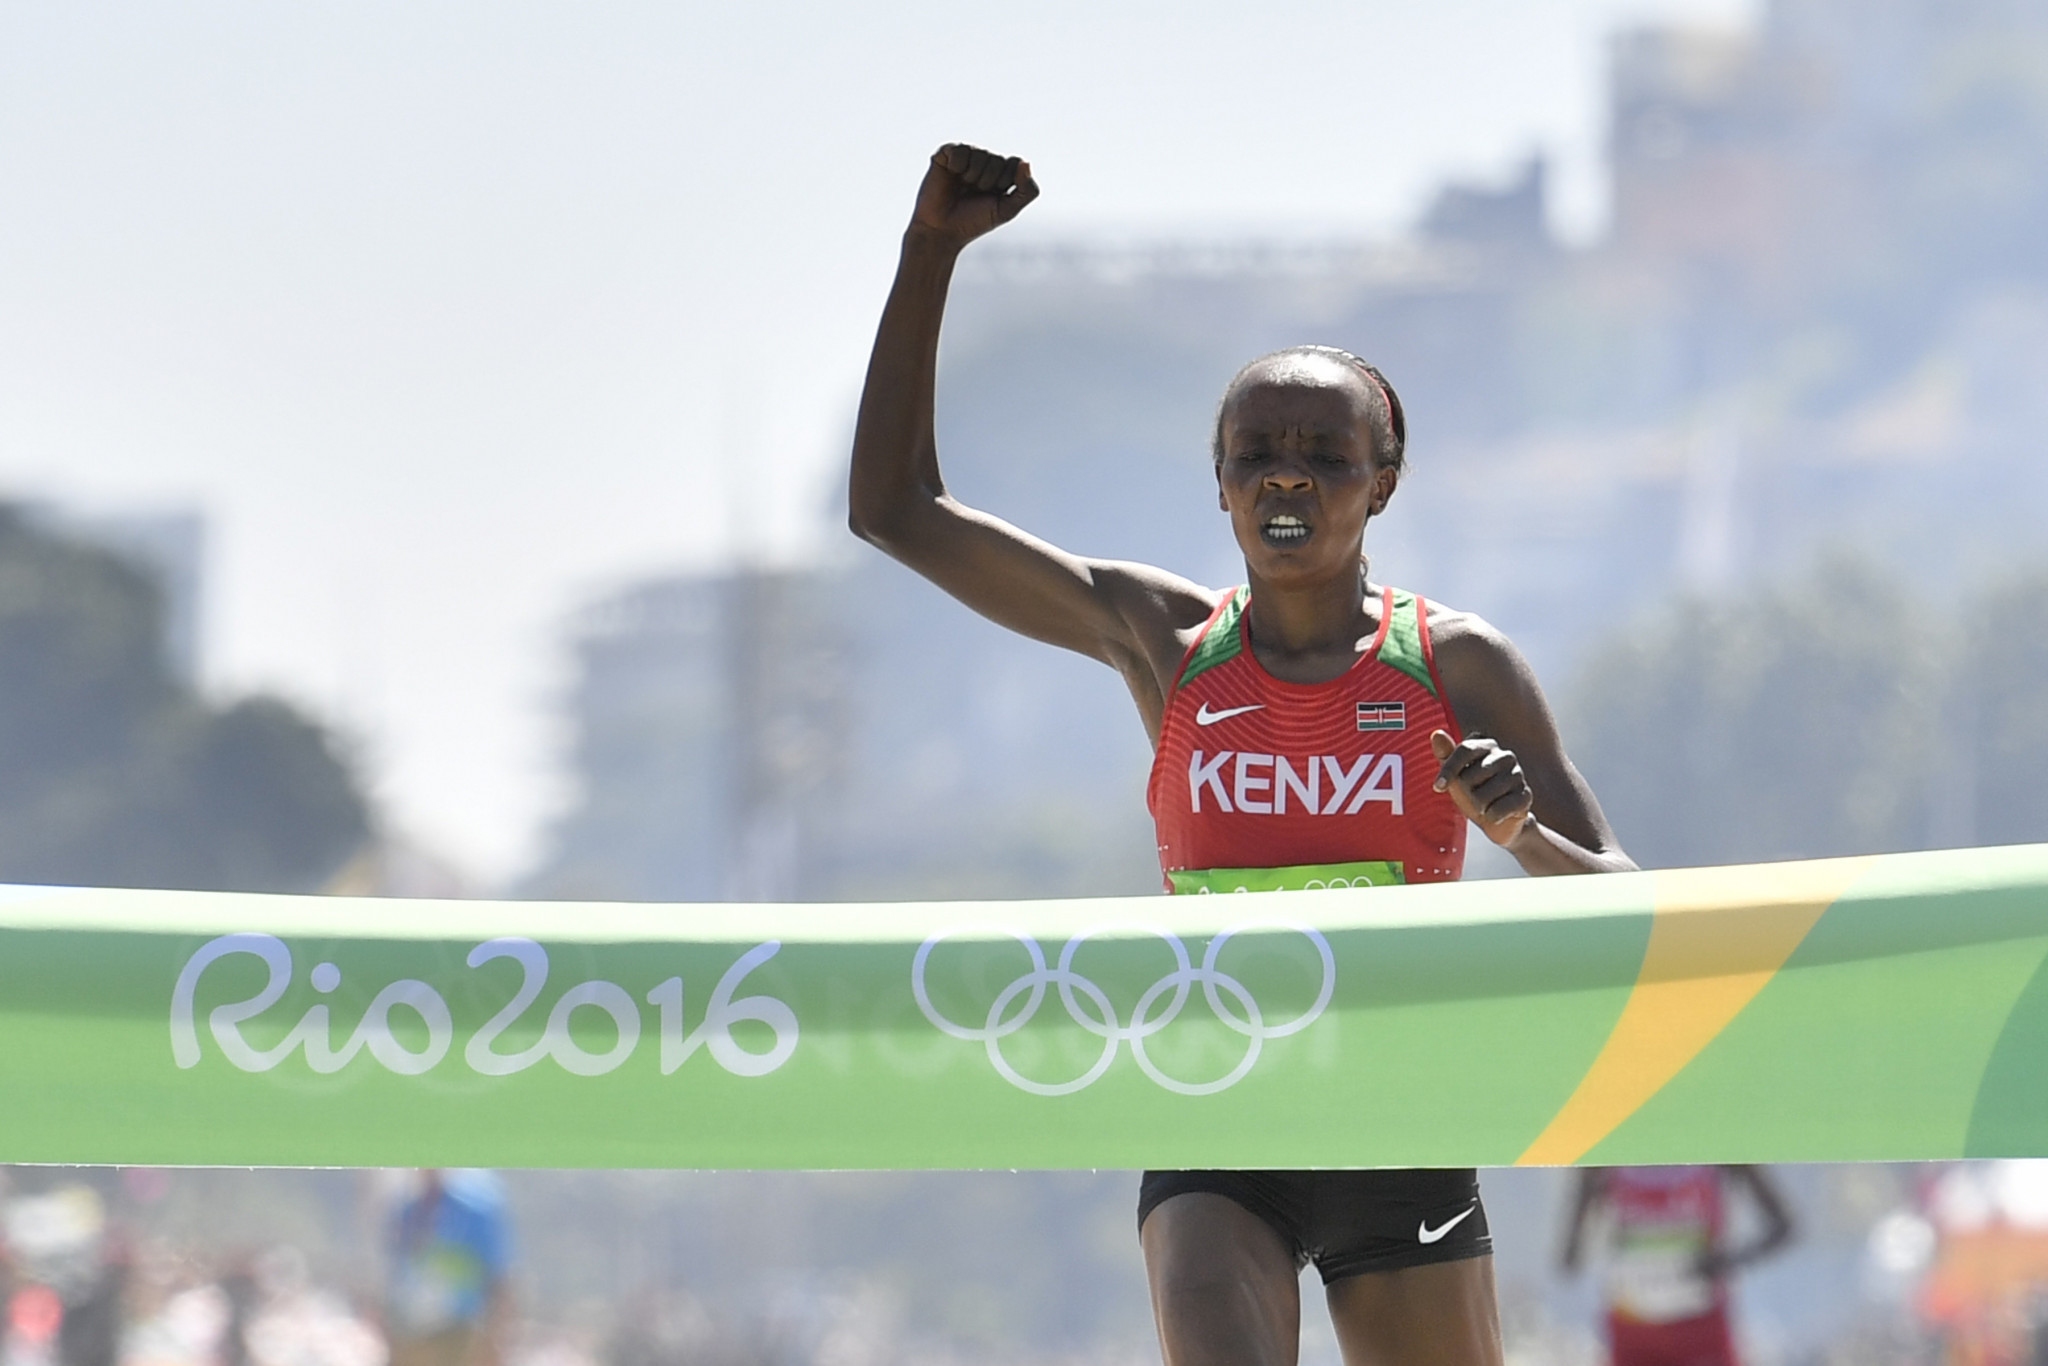 Olympic marathon champion Jemima Sumgong is among the top Kenyan runners currently banned for doping ©Getty Images